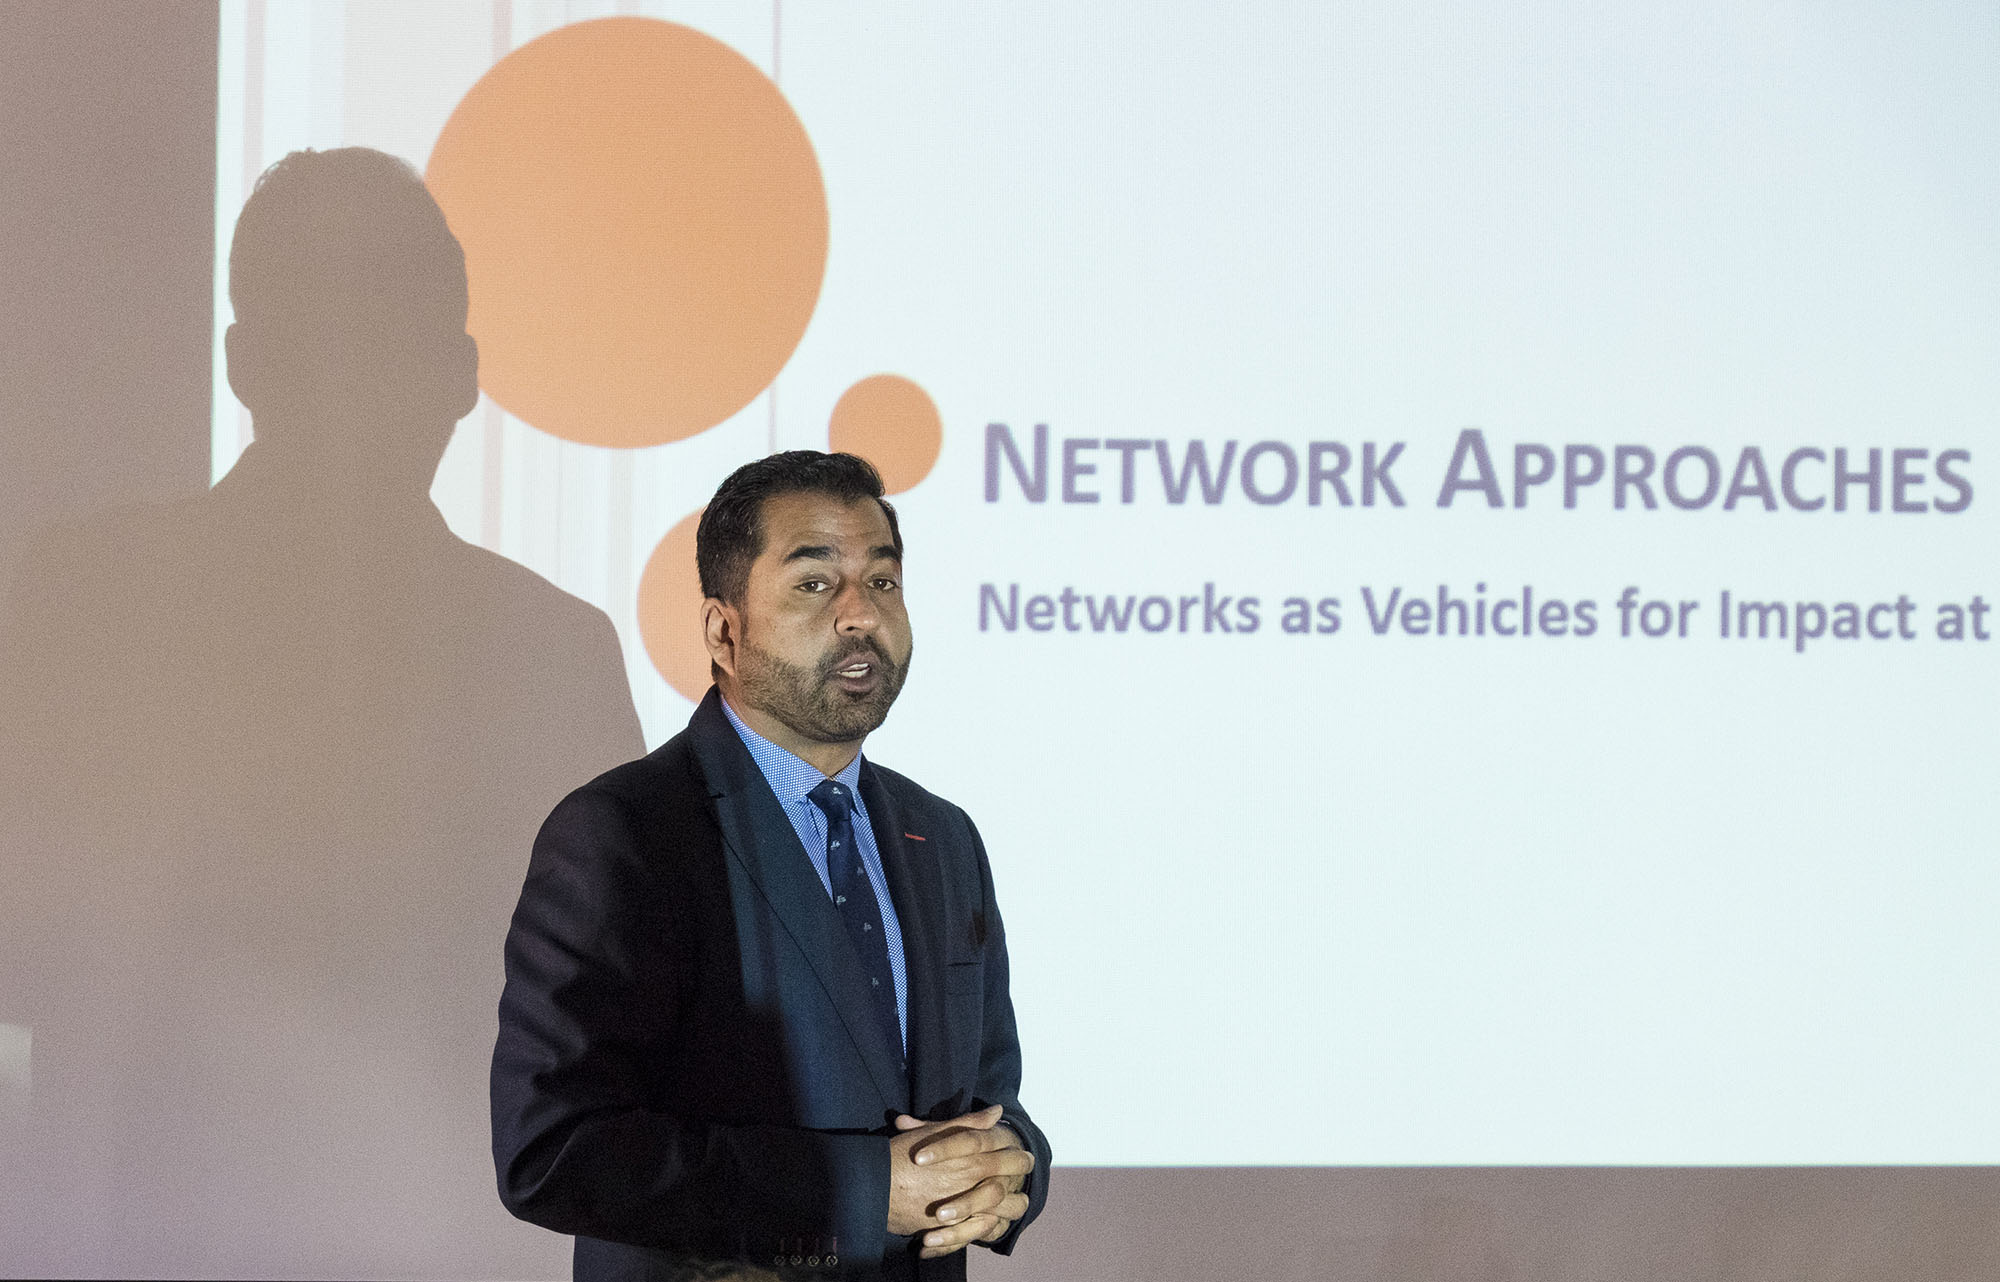 Karmali Discusses How Philanthropy Can Use Networks for Social Good